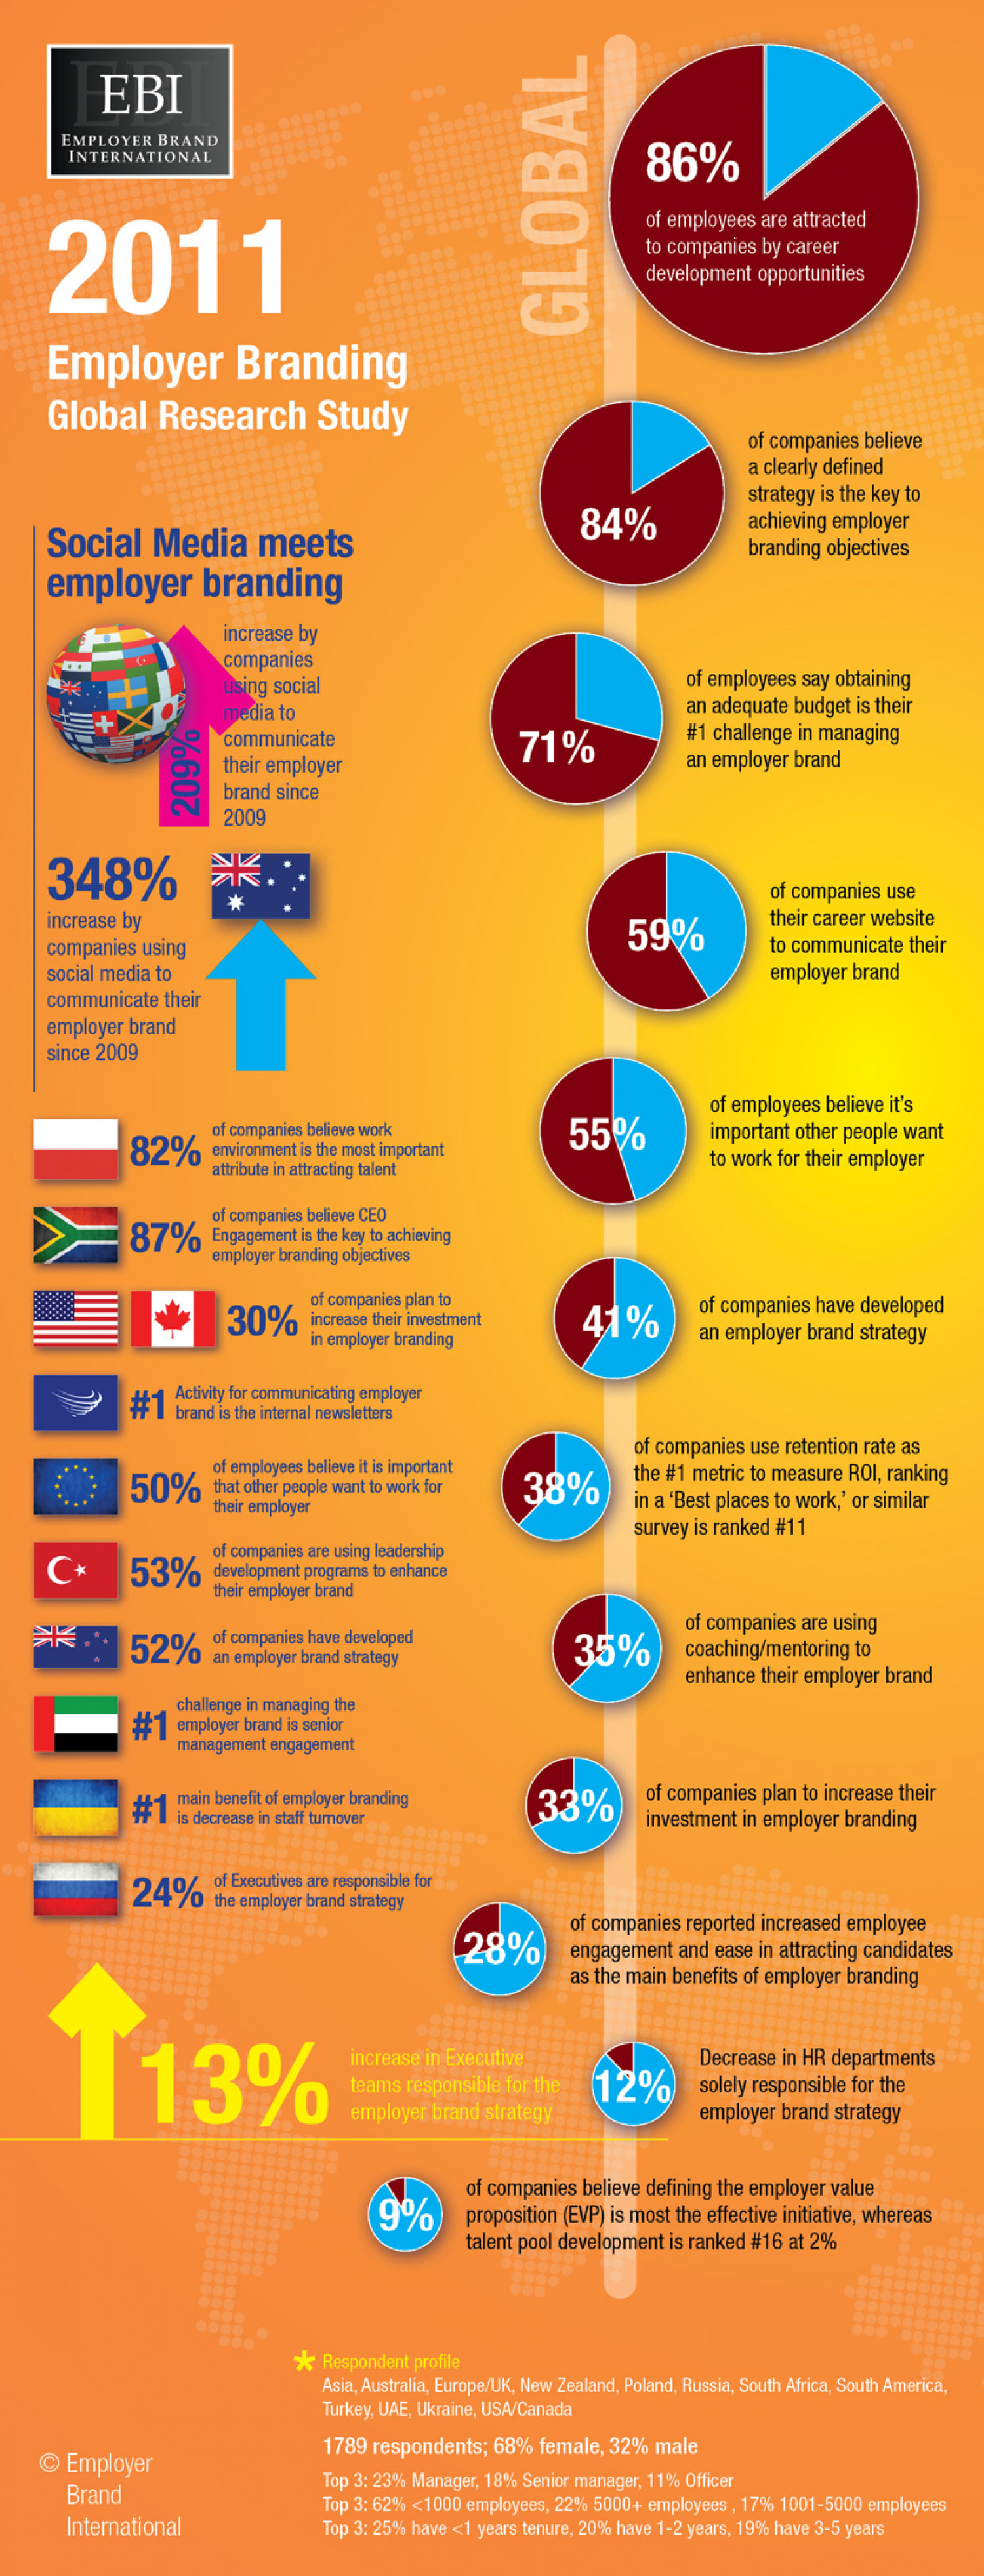 2011 Global Employer Branding Study Results Infographic